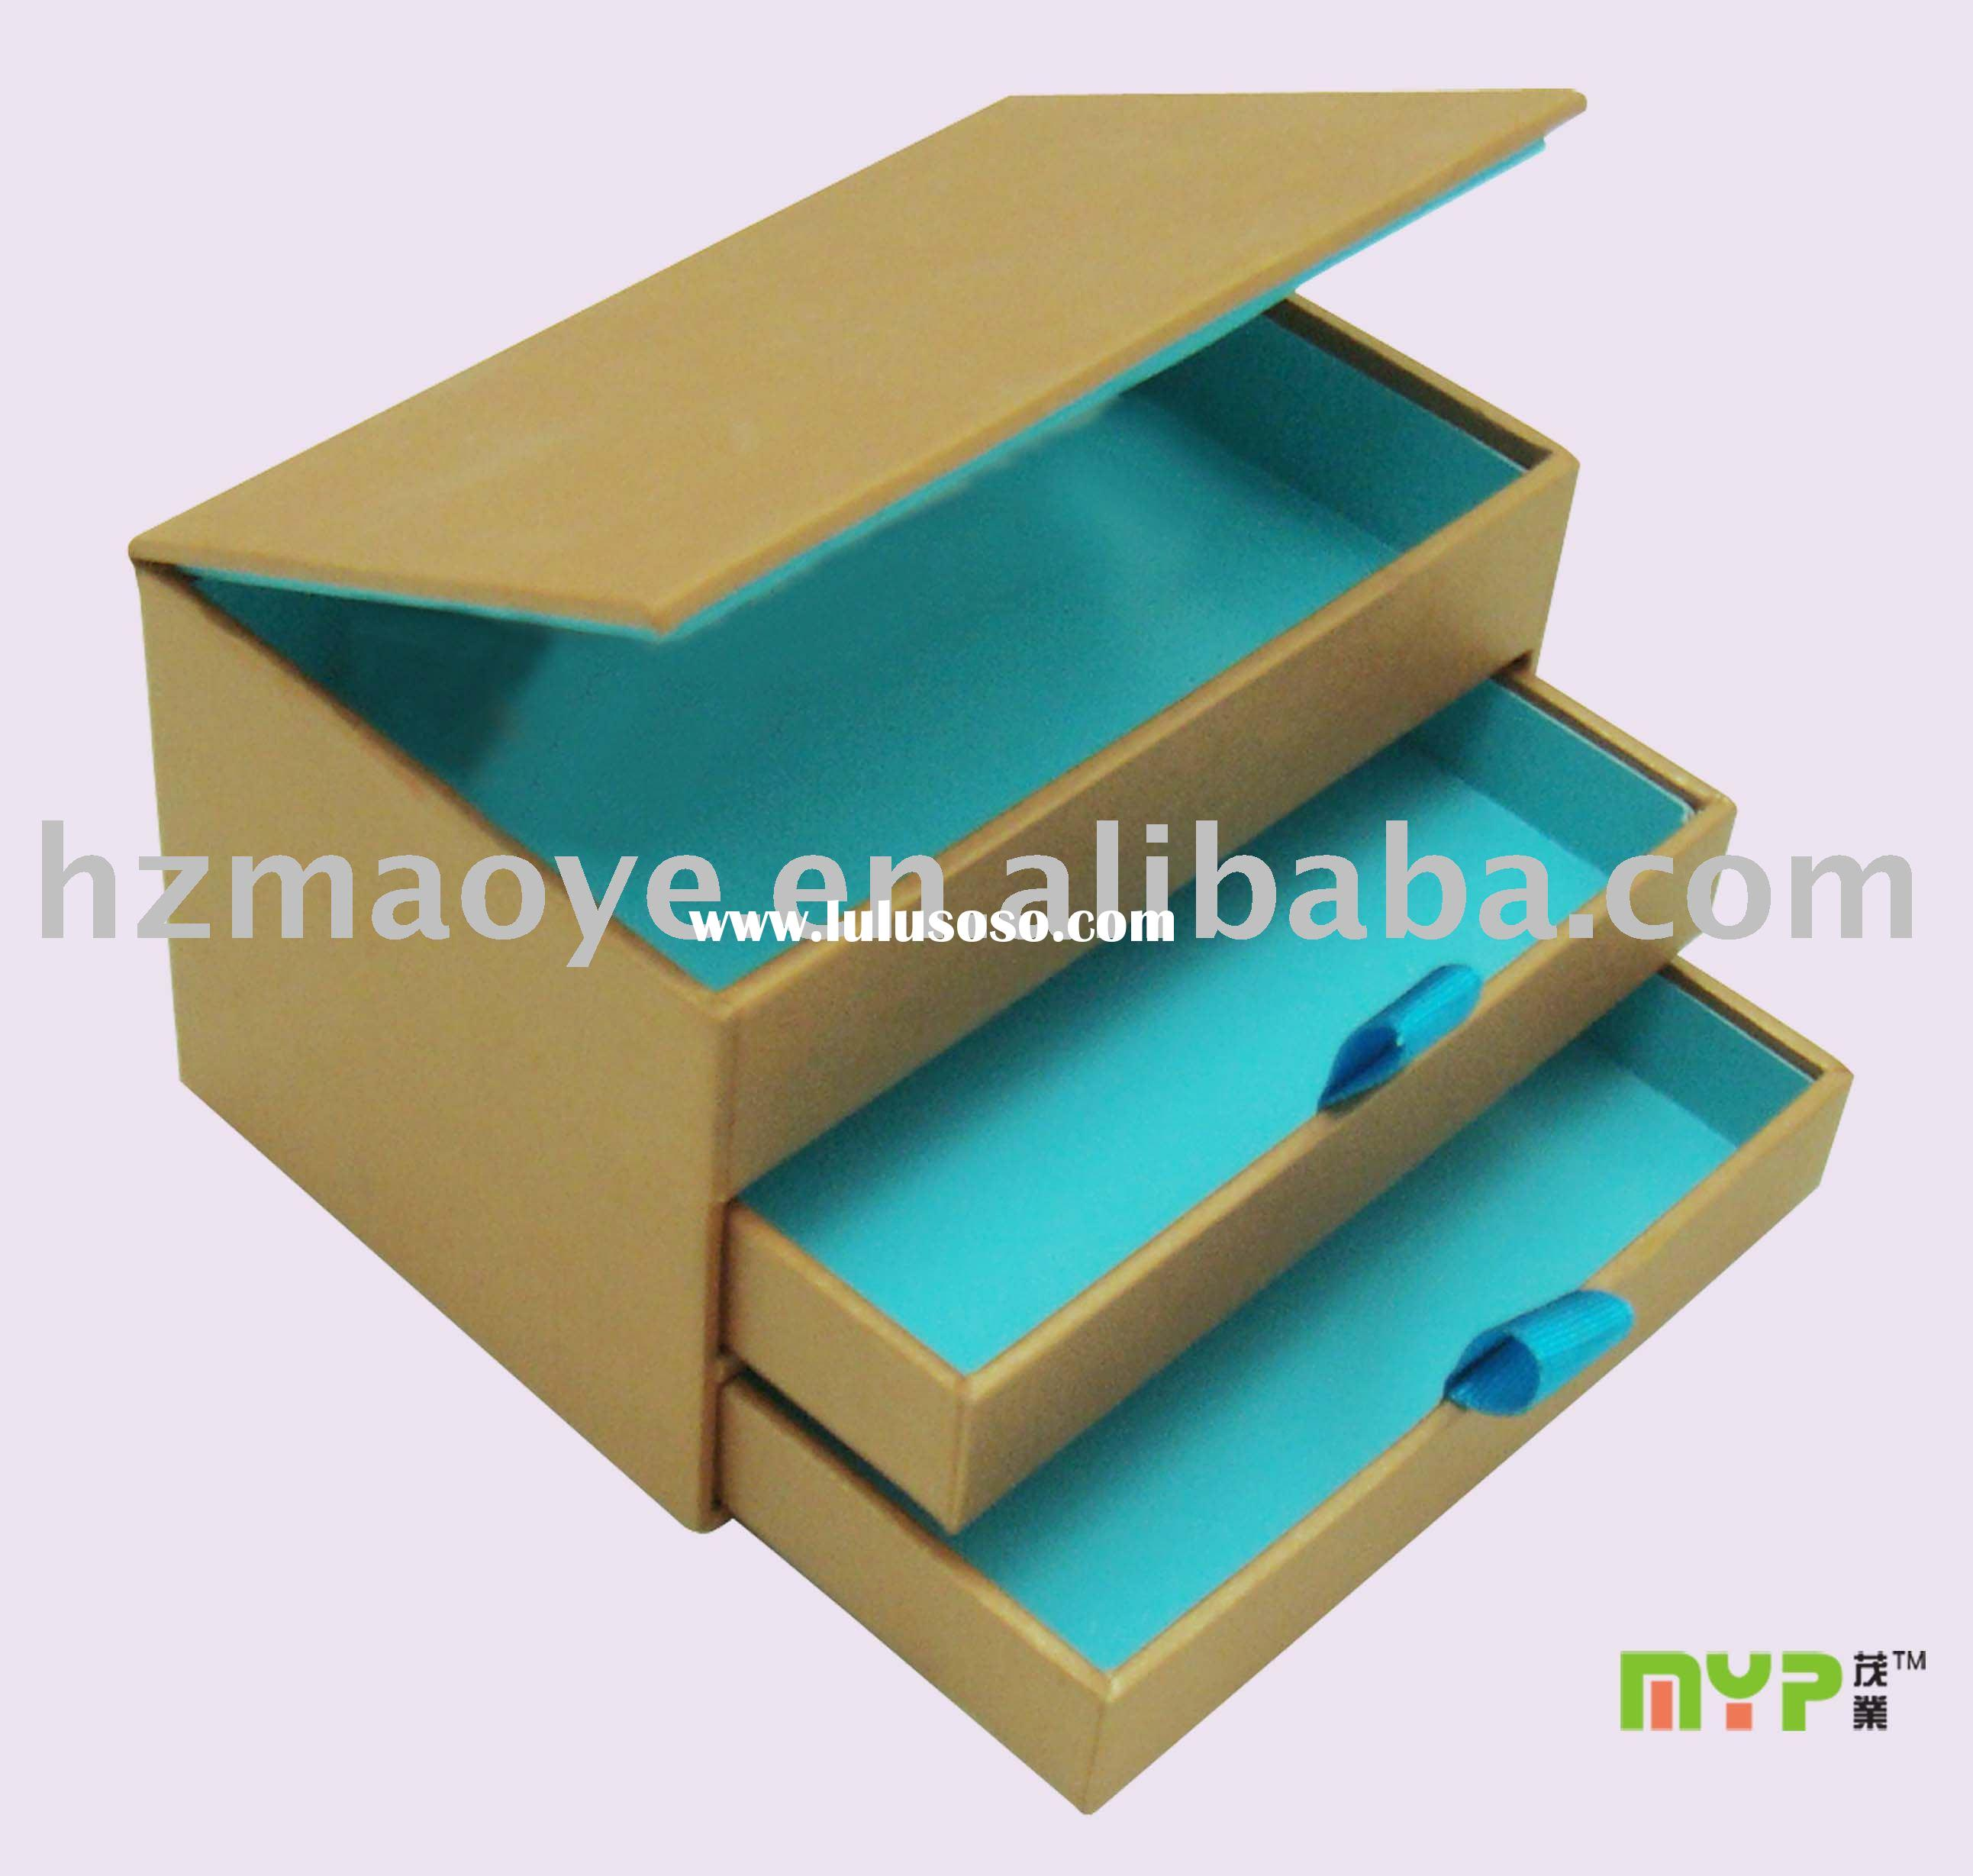 drawer box paper, drawer box paper Manufacturers in LuLuSoSo.com ...